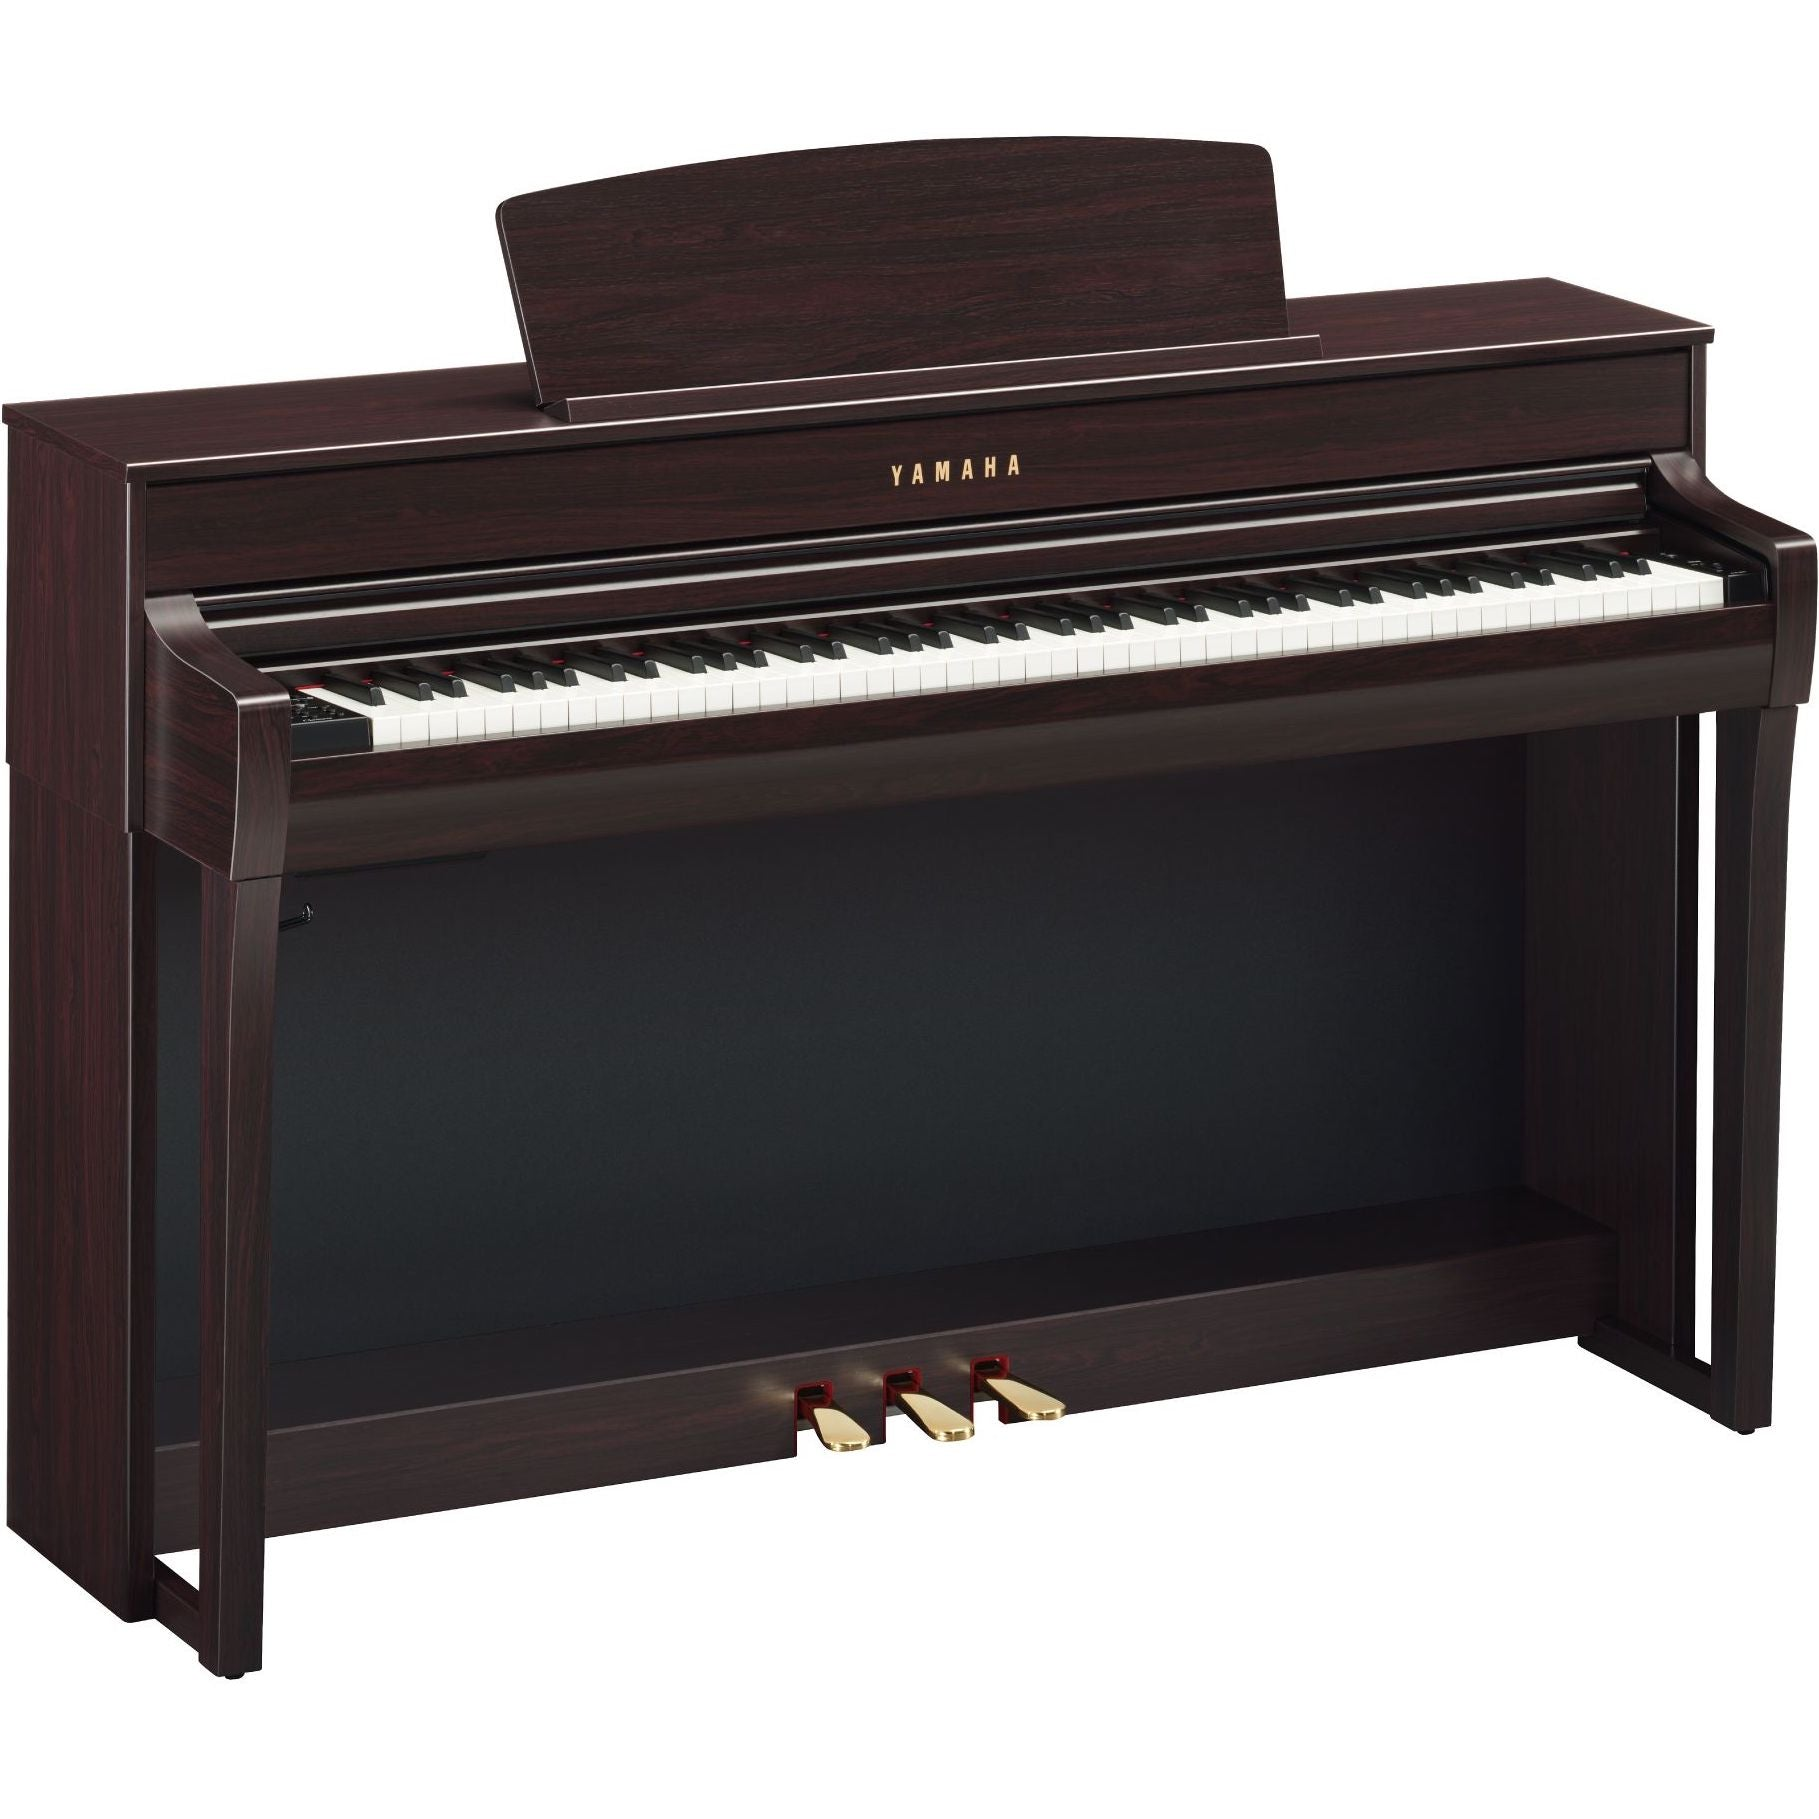 Yamaha Clavinova CLP-745R Dark Rosewood Digital Piano | Music Experience | Shop Online | South Africa